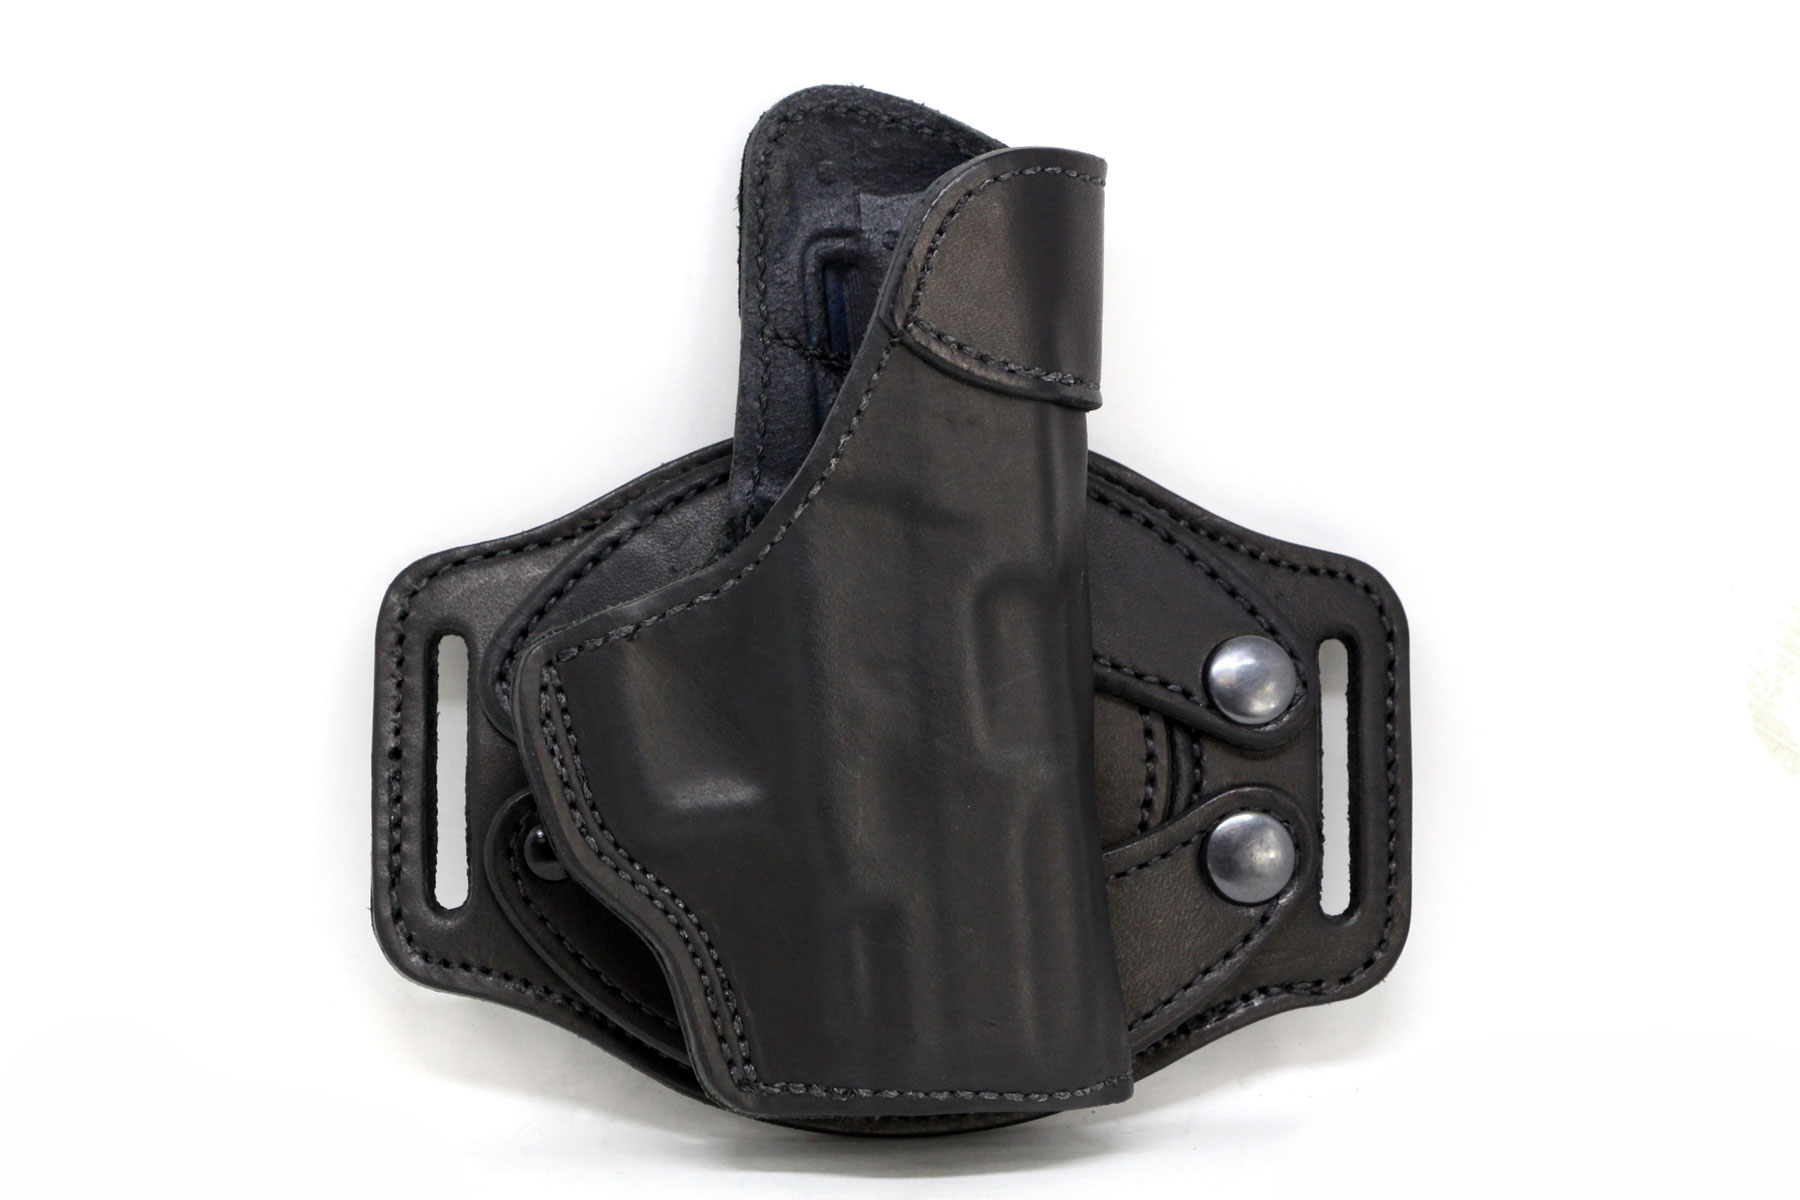 SCCY CPX 1 OWB Holster, Modular REVO